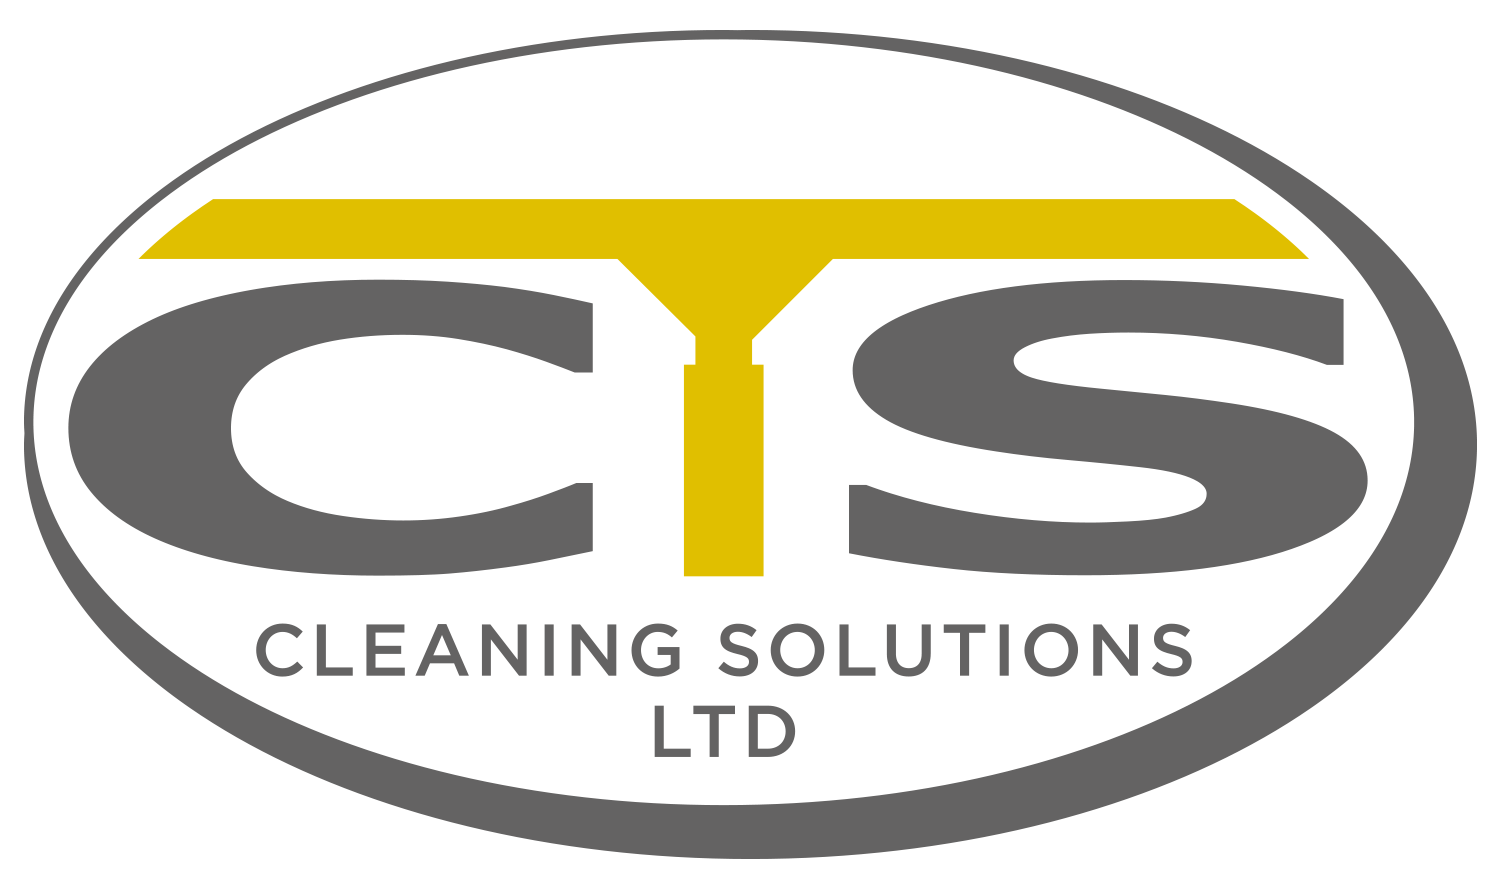 CTS Cleaning Solutions Ltd